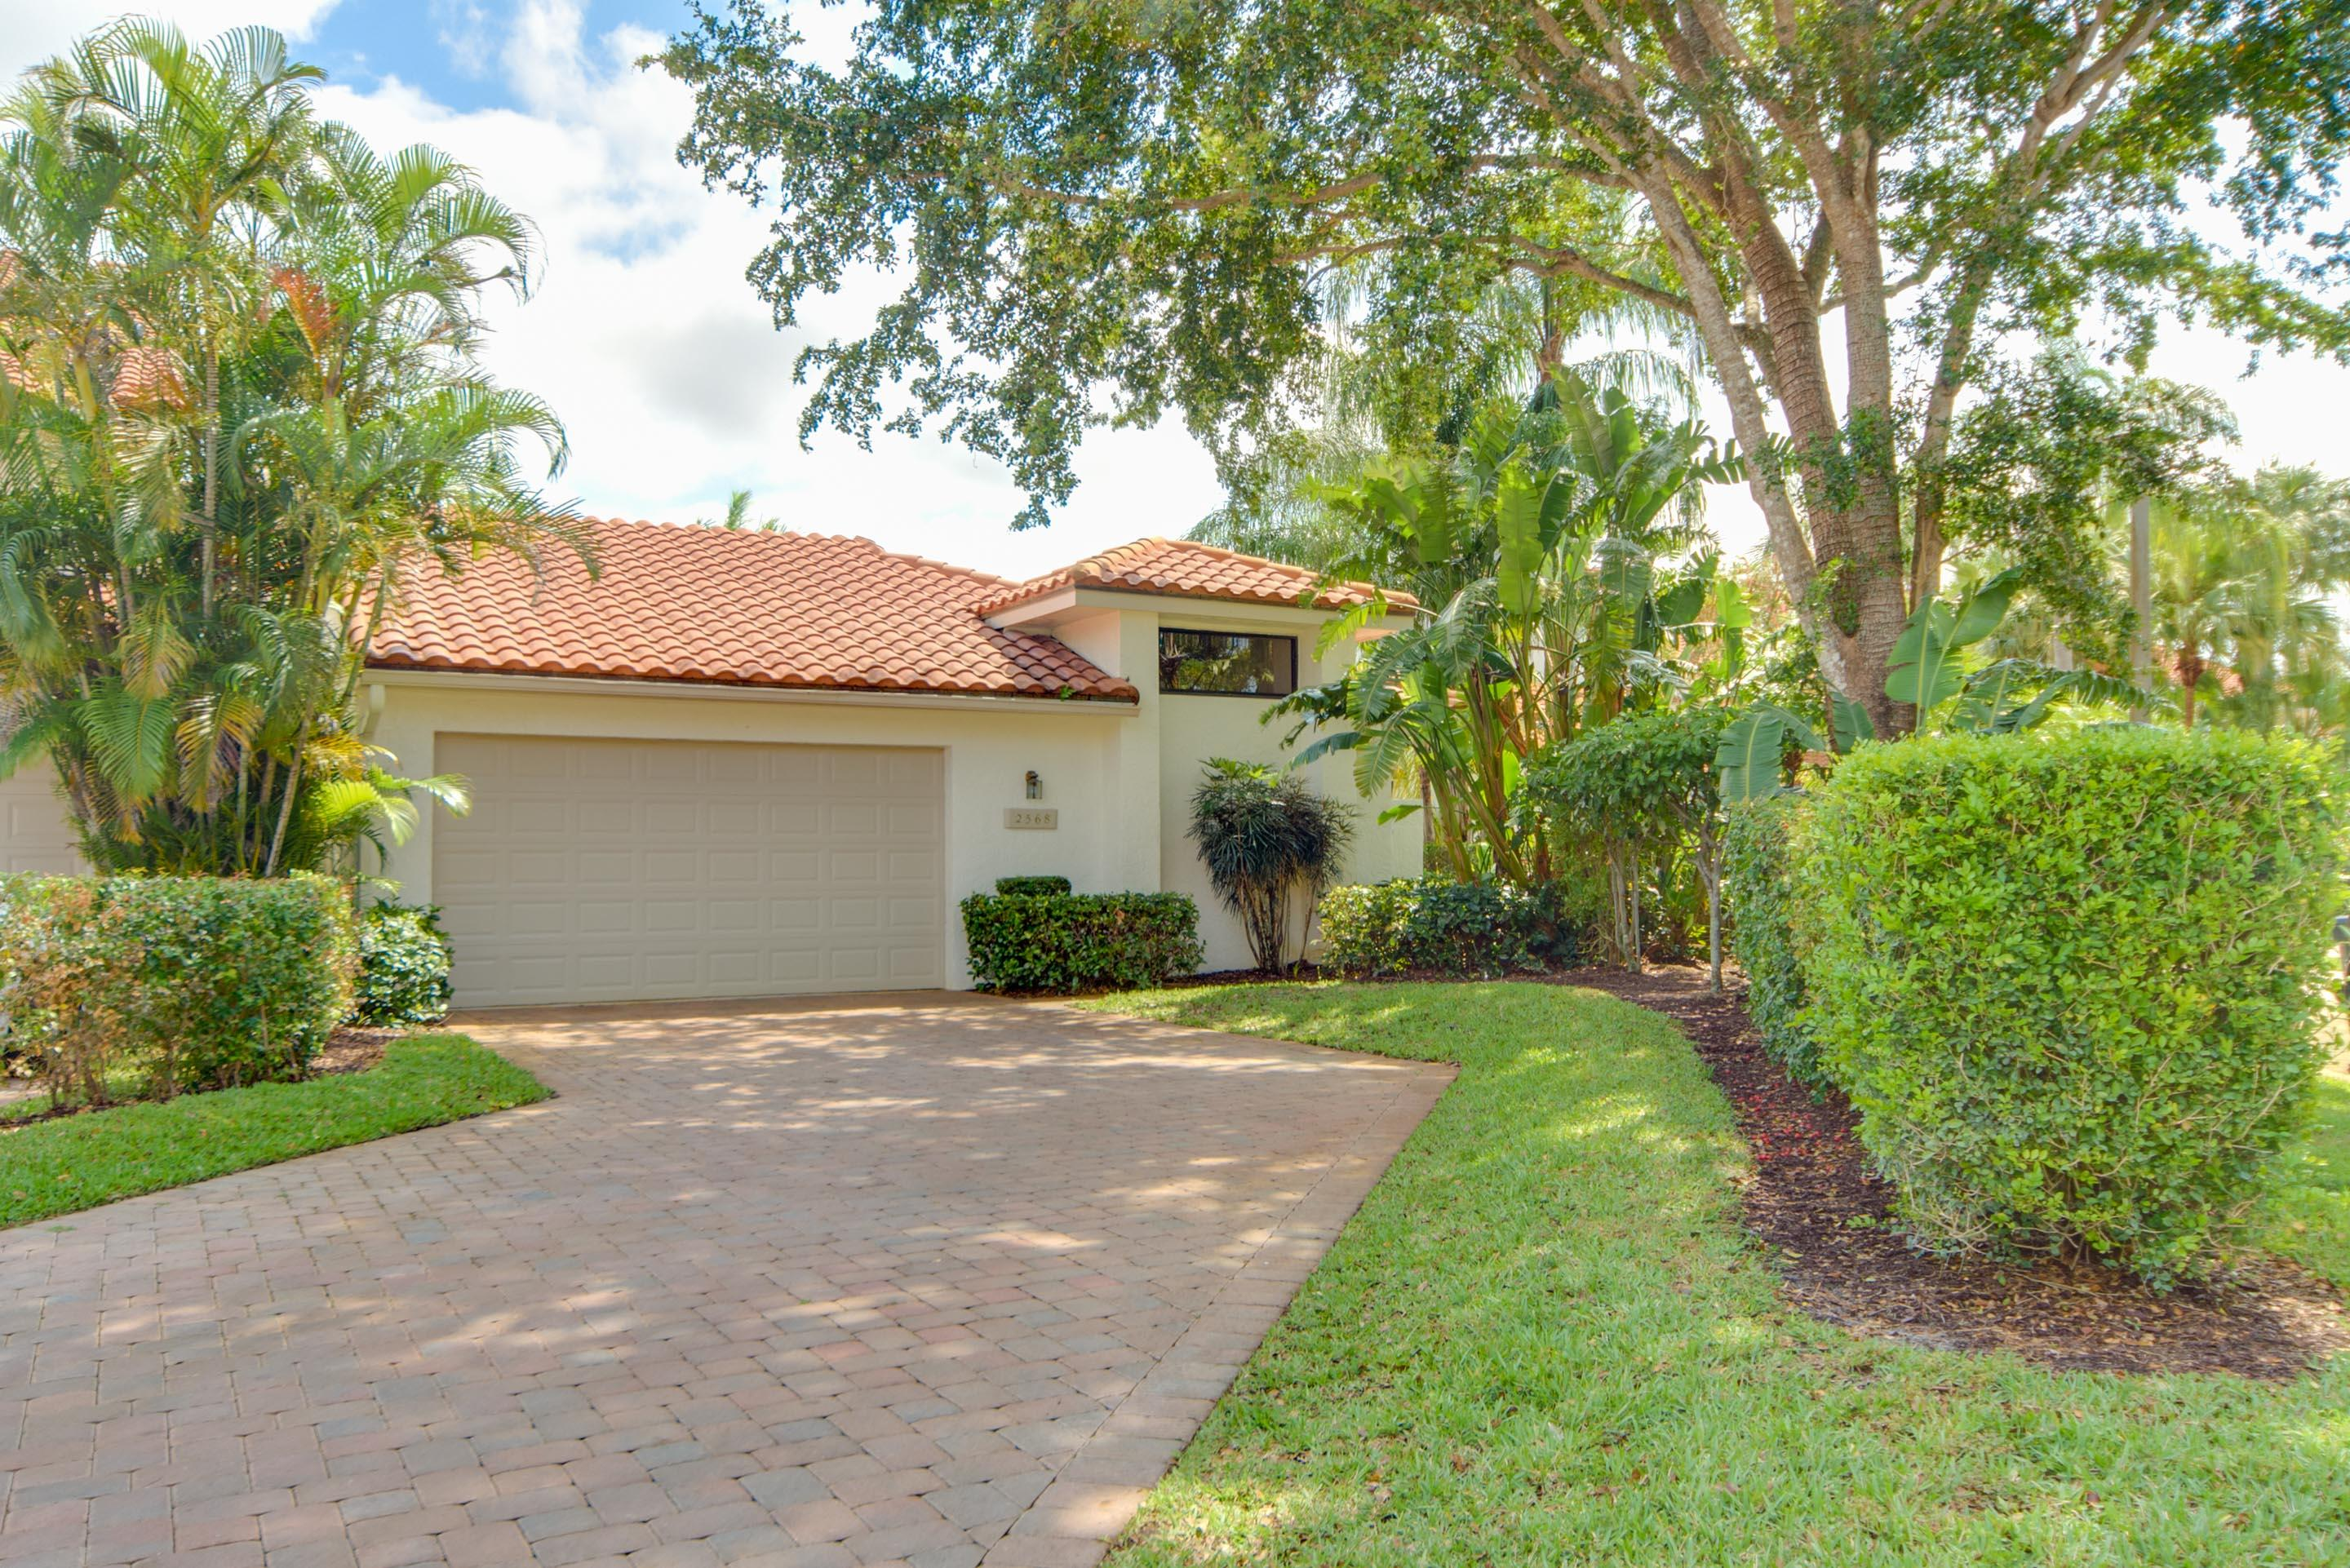 2568 Sheltingham Drive, Wellington, Florida 33414, 3 Bedrooms Bedrooms, ,3 BathroomsBathrooms,Townhouse,For Sale,Sheltingham,RX-10433027